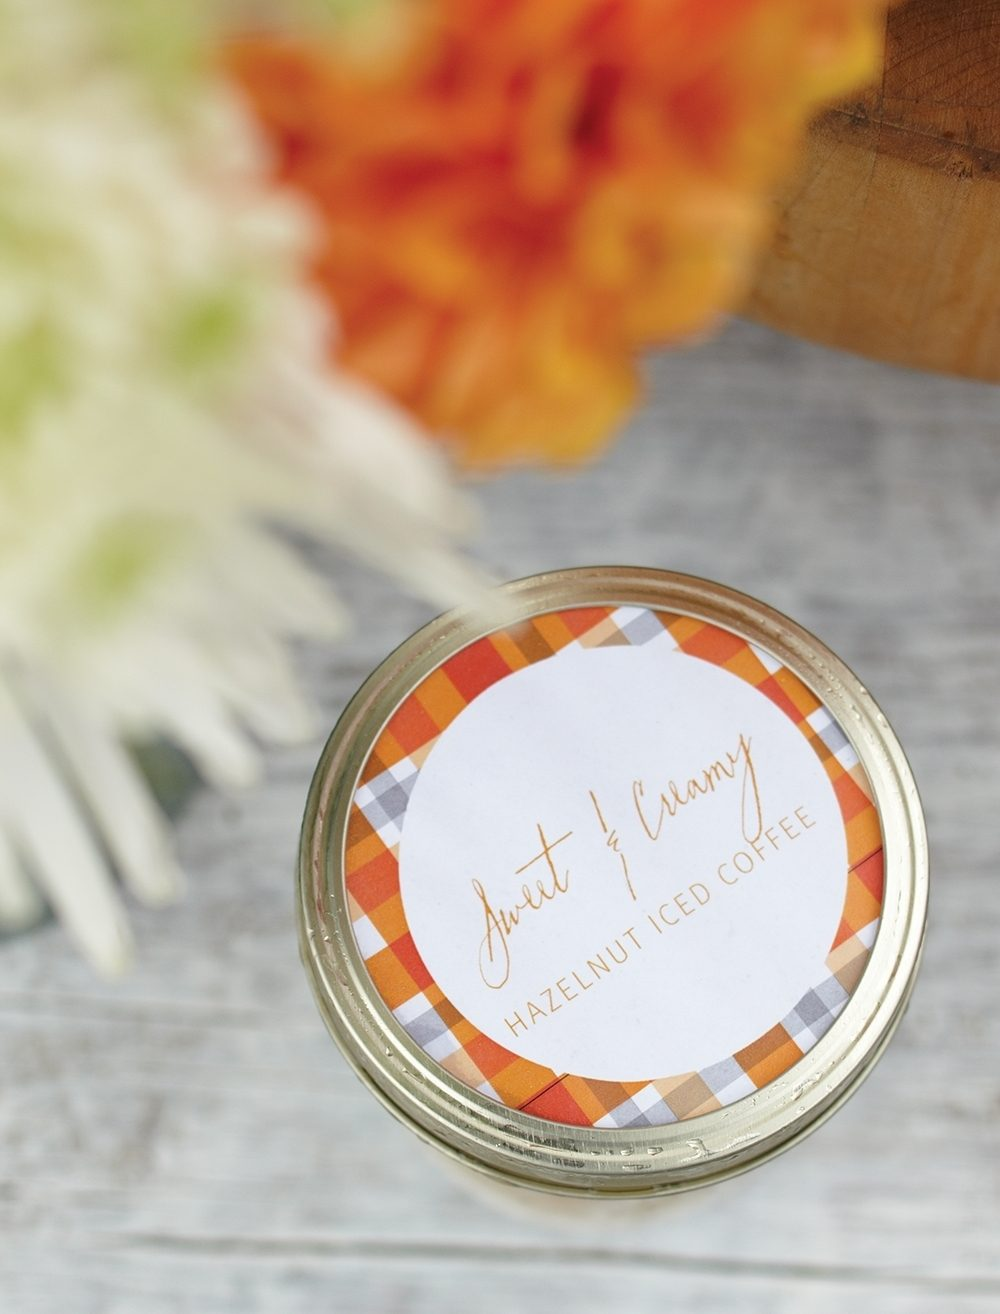 Canning jars with labels identify cold drinks at a casual outdoor fall party.